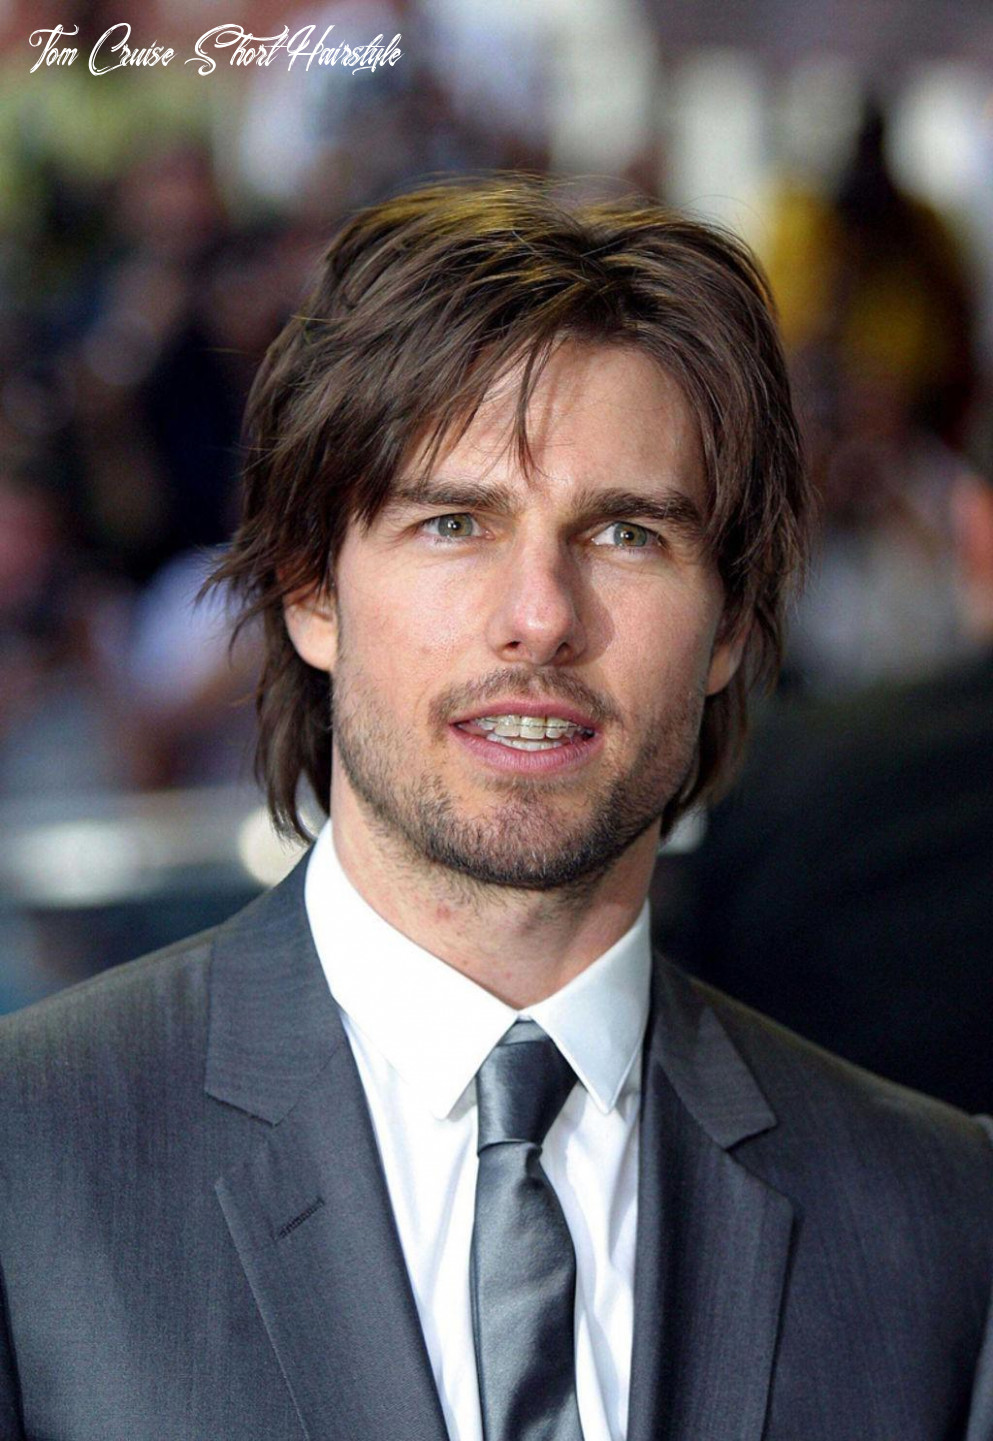 Tom cruise hairstyles star hairstyles tom cruise short hairstyle